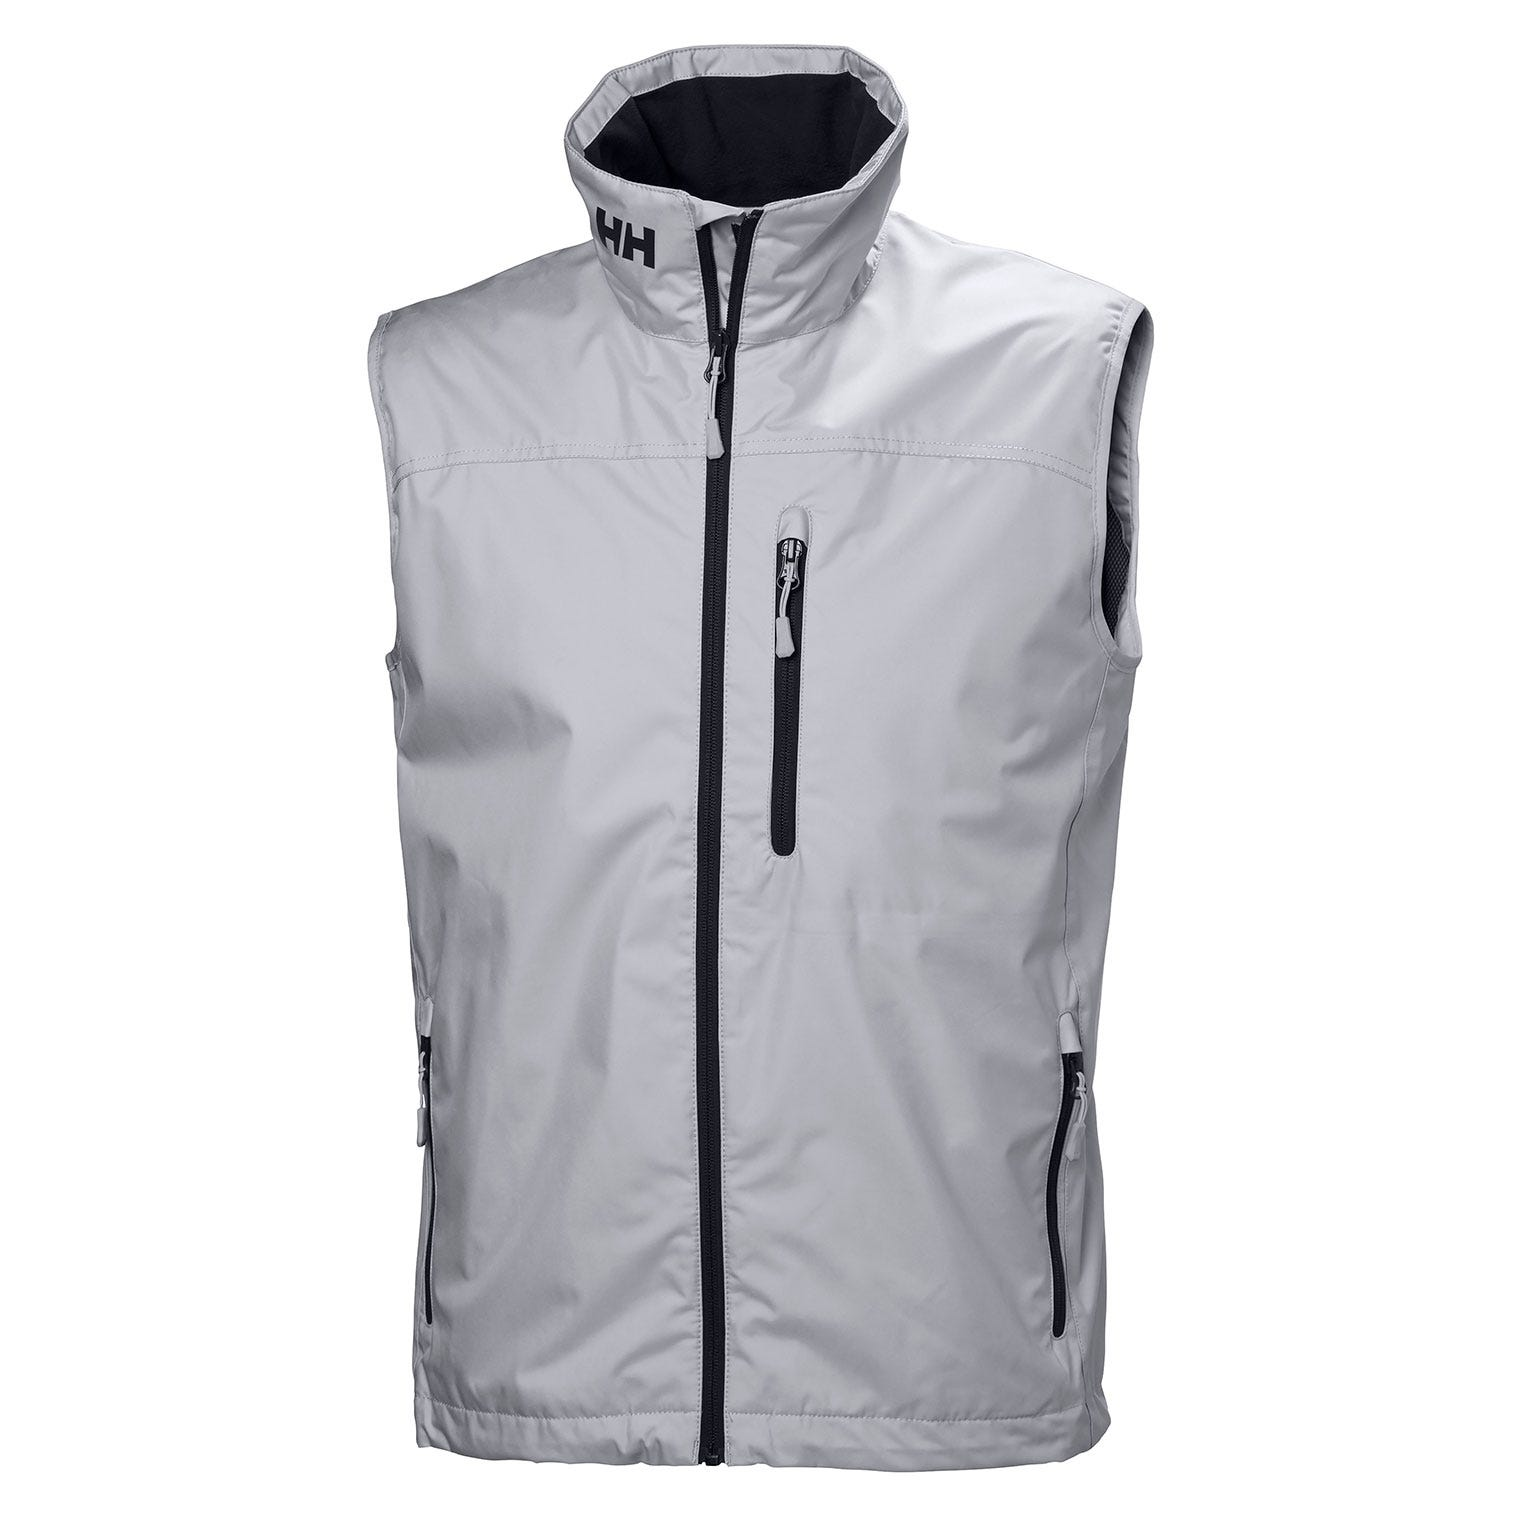 Helly Hansen Mens Crew Vest Sailing Jacket Grey XXL